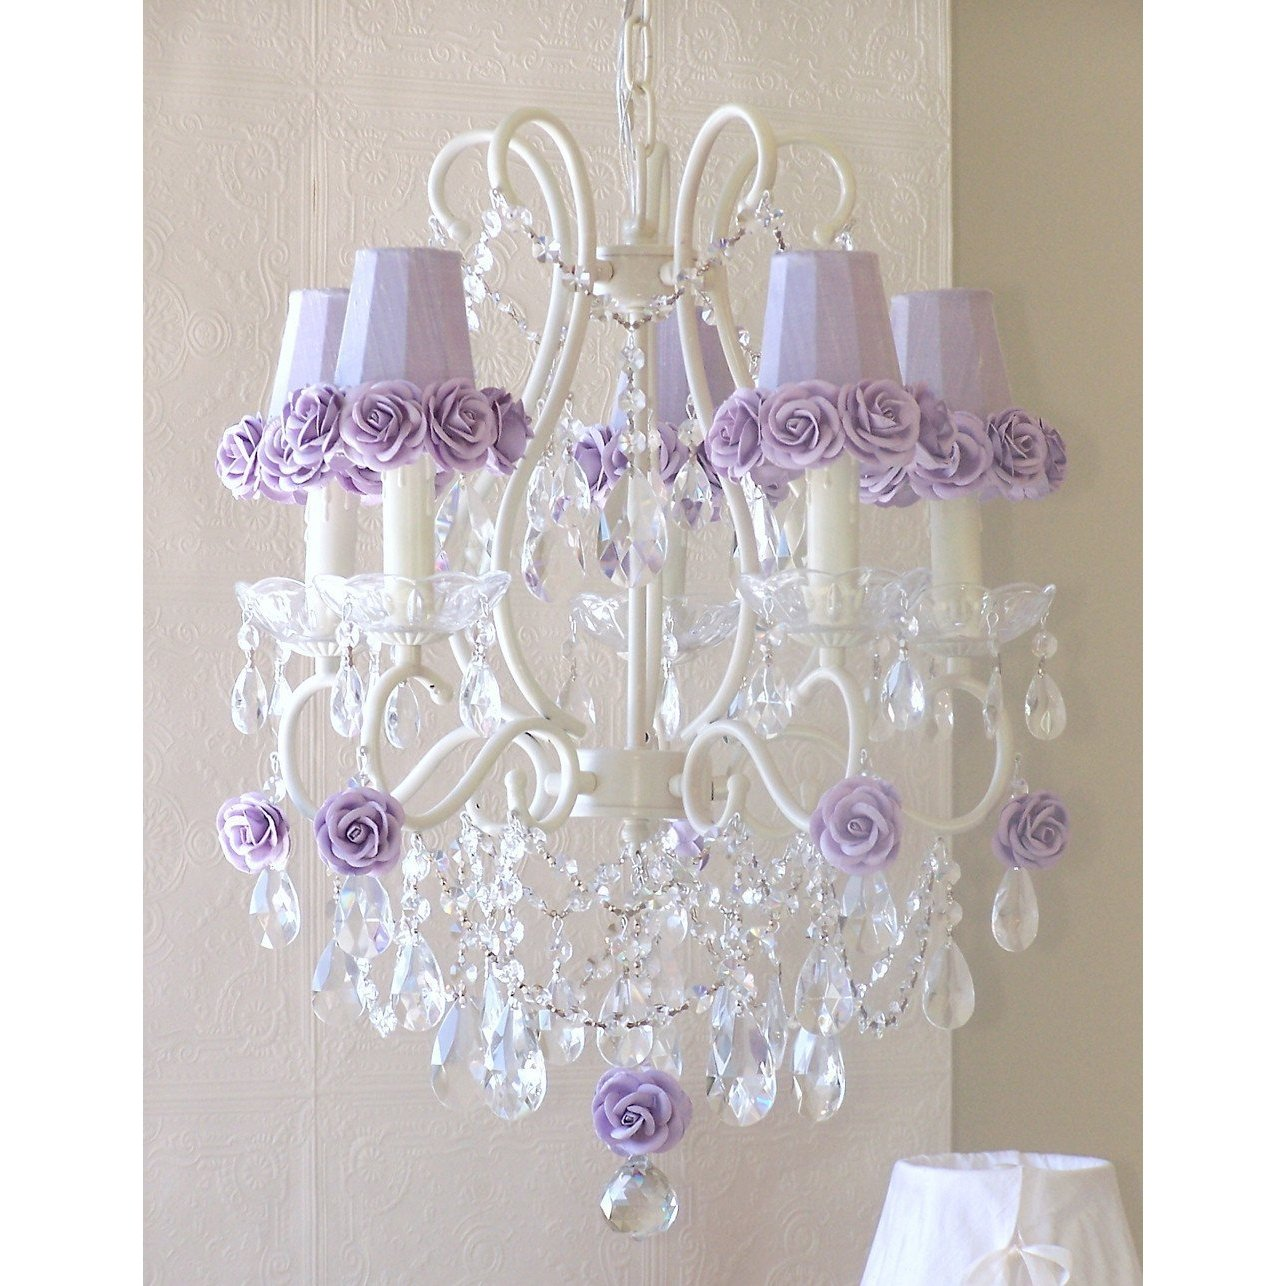 5-Light Antique White Chandelier with Lavender Rose Shades-Chandeliers-Default-Jack and Jill Boutique